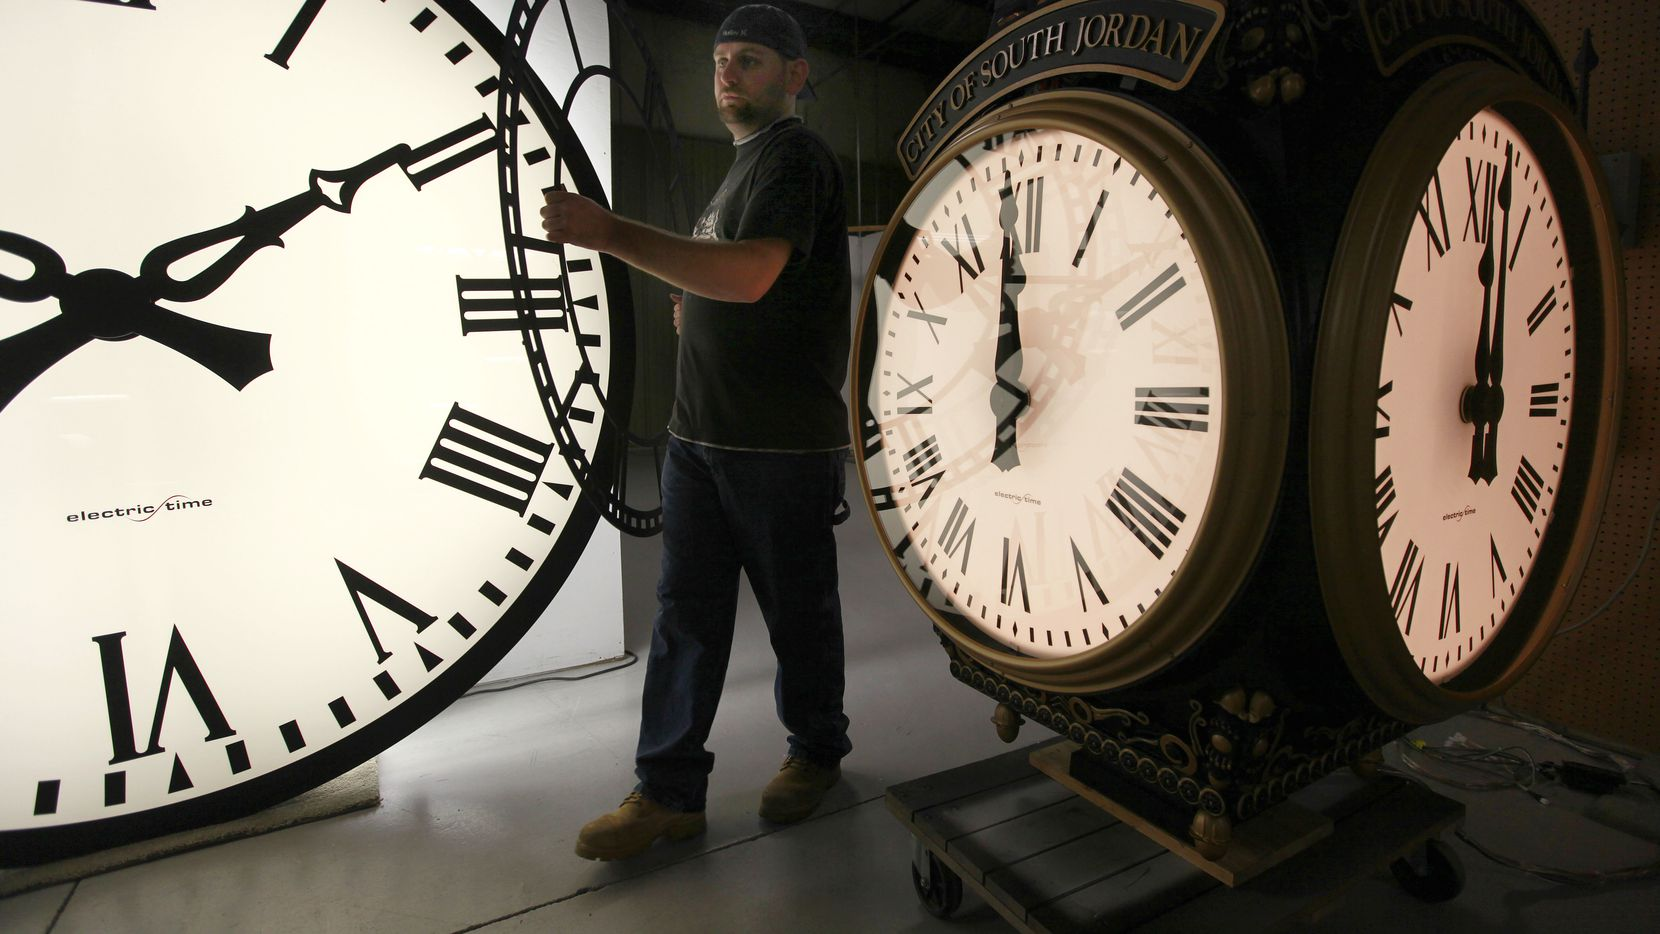 Dan LaMoore of Electric Time Co. moves a clock face at his plant in Medfield, Mass., between a large tower clock (left) bound for King of Prussia, Pa., and a post clock headed to South Jordan, Utah. Daylight Savings Time ends on at 2 a.m. Sunday, when clocks will be set back one hour.  (2011 File Photo)